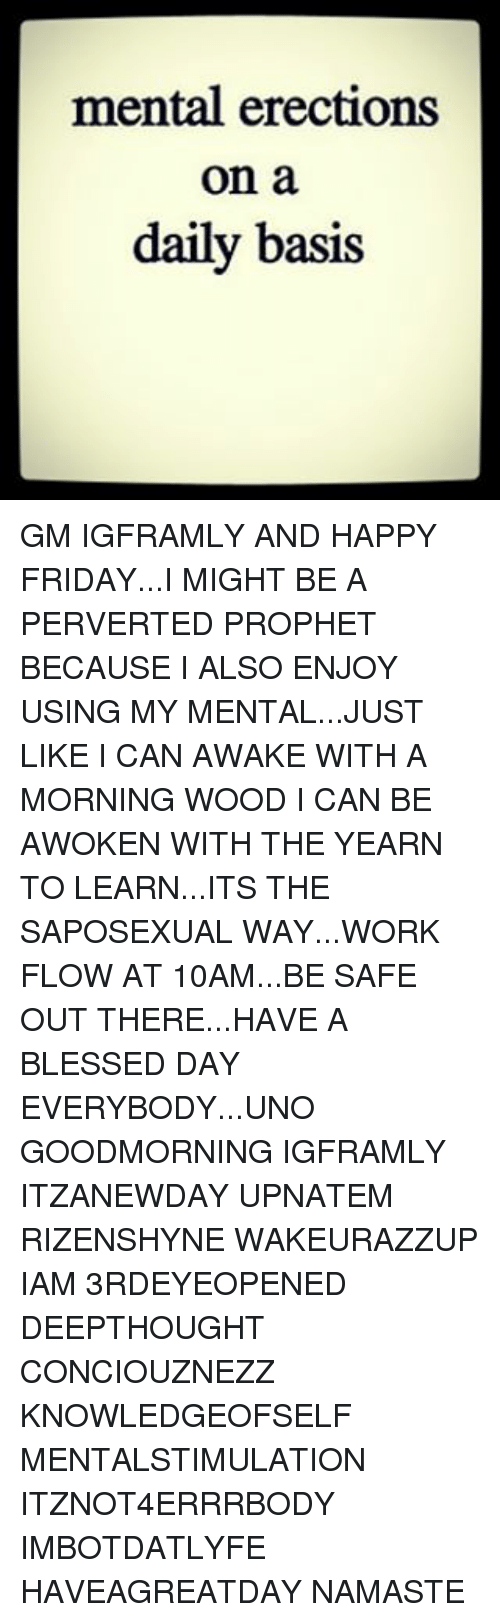 Having A Blessed Day: mental erections  on a  daily basis GM IGFRAMLY AND HAPPY FRIDAY...I MIGHT BE A PERVERTED PROPHET BECAUSE I ALSO ENJOY USING MY MENTAL...JUST LIKE I CAN AWAKE WITH A MORNING WOOD I CAN BE AWOKEN WITH THE YEARN TO LEARN...ITS THE SAPOSEXUAL WAY...WORK FLOW AT 10AM...BE SAFE OUT THERE...HAVE A BLESSED DAY EVERYBODY...UNO GOODMORNING IGFRAMLY ITZANEWDAY UPNATEM RIZENSHYNE WAKEURAZZUP IAM 3RDEYEOPENED DEEPTHOUGHT CONCIOUZNEZZ KNOWLEDGEOFSELF MENTALSTIMULATION ITZNOT4ERRRBODY IMBOTDATLYFE HAVEAGREATDAY NAMASTE